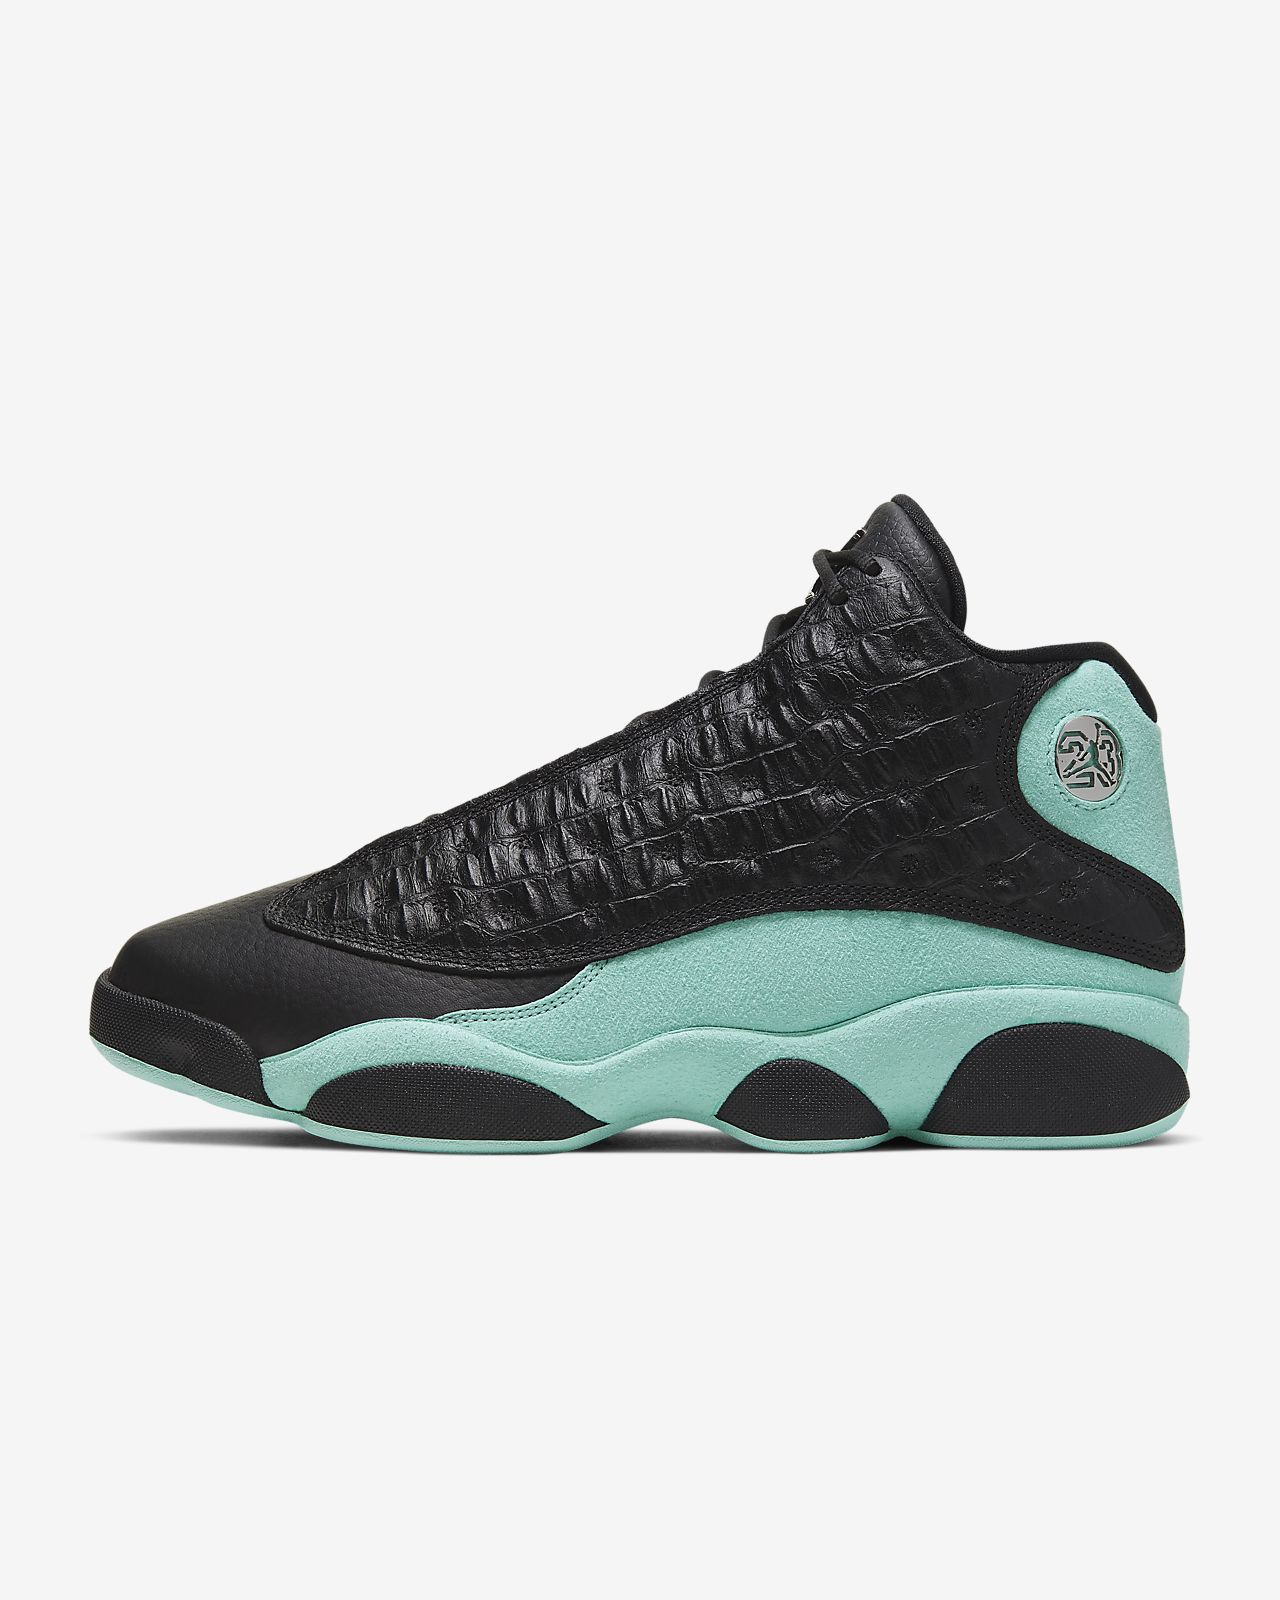 Air Jordan 13 Retro Shoe